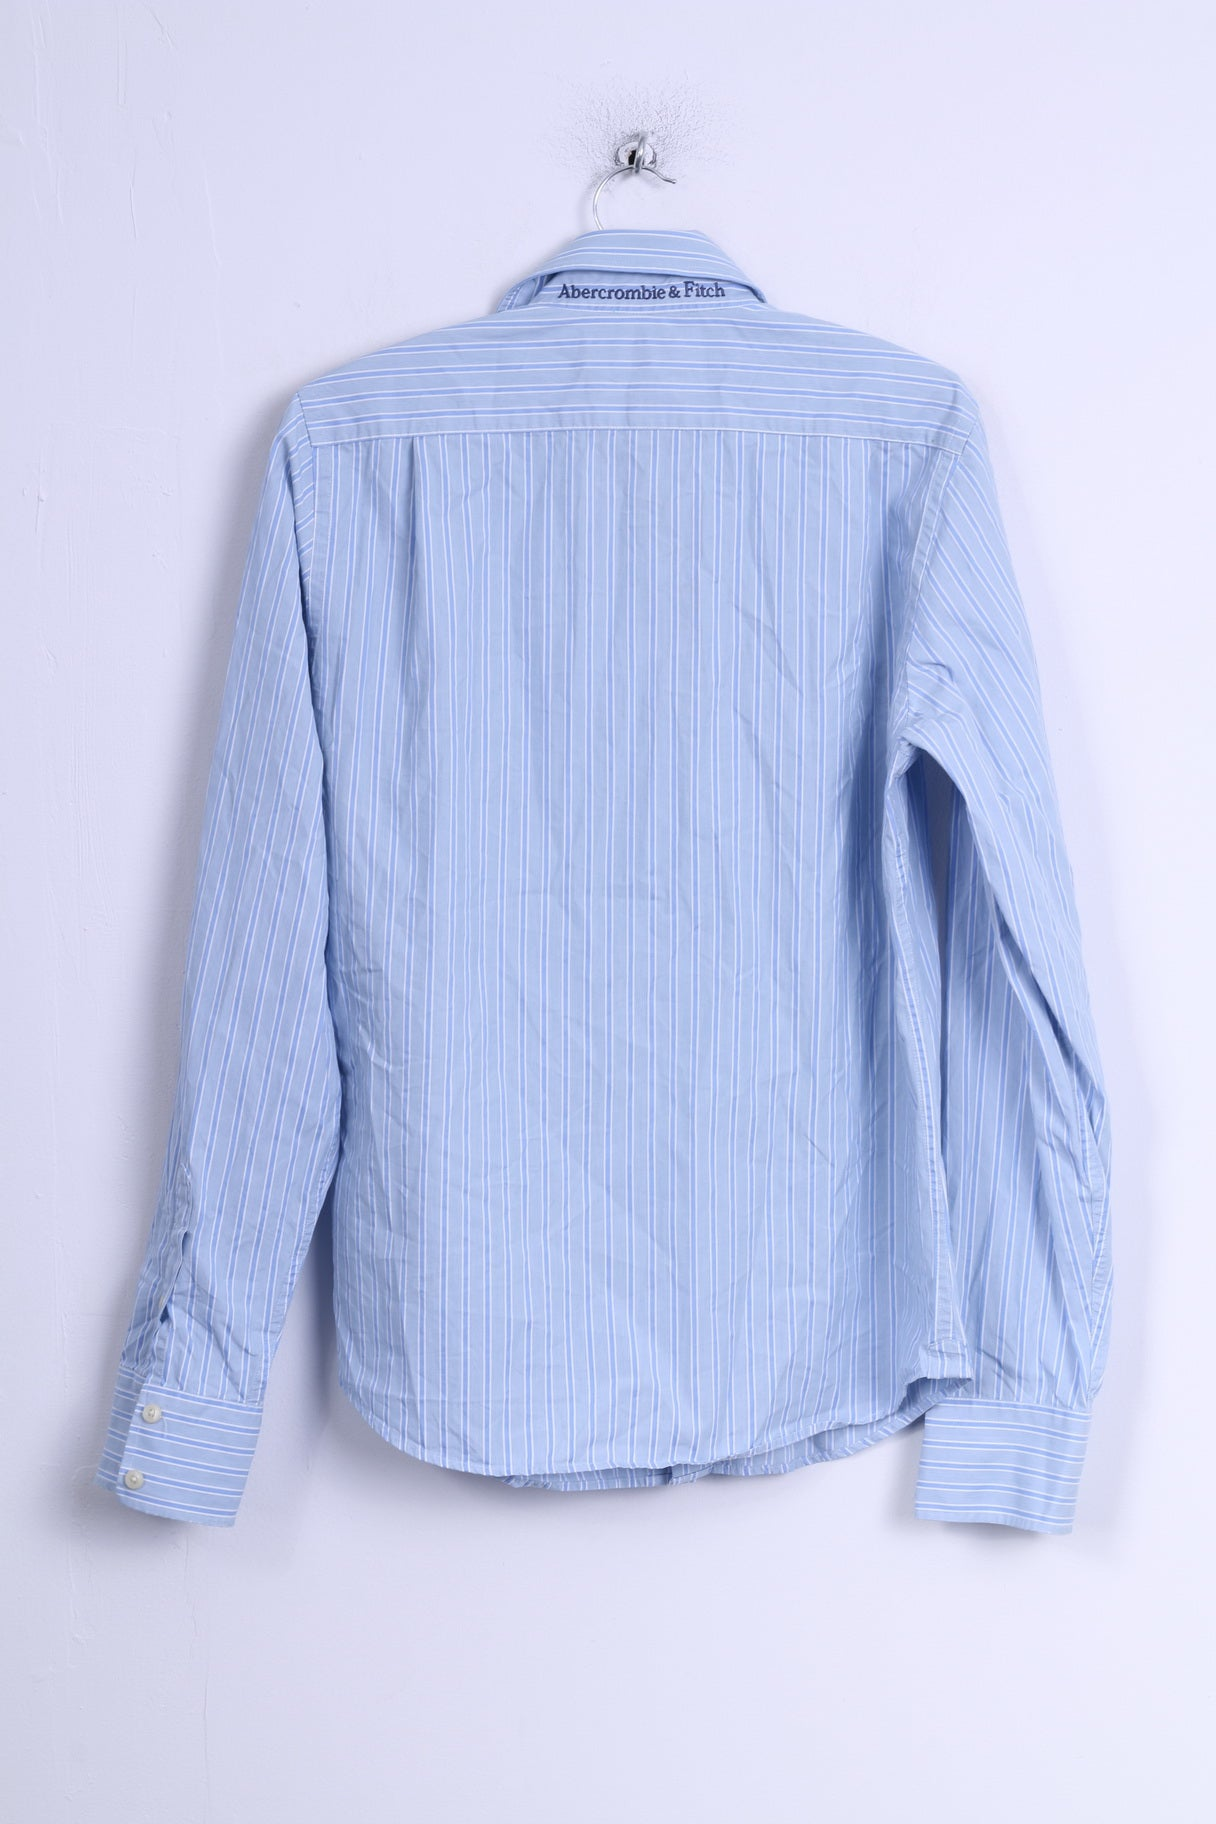 Abercrombie fitch mens m casual shirt blue striped for Mens long sleeve casual cotton shirts